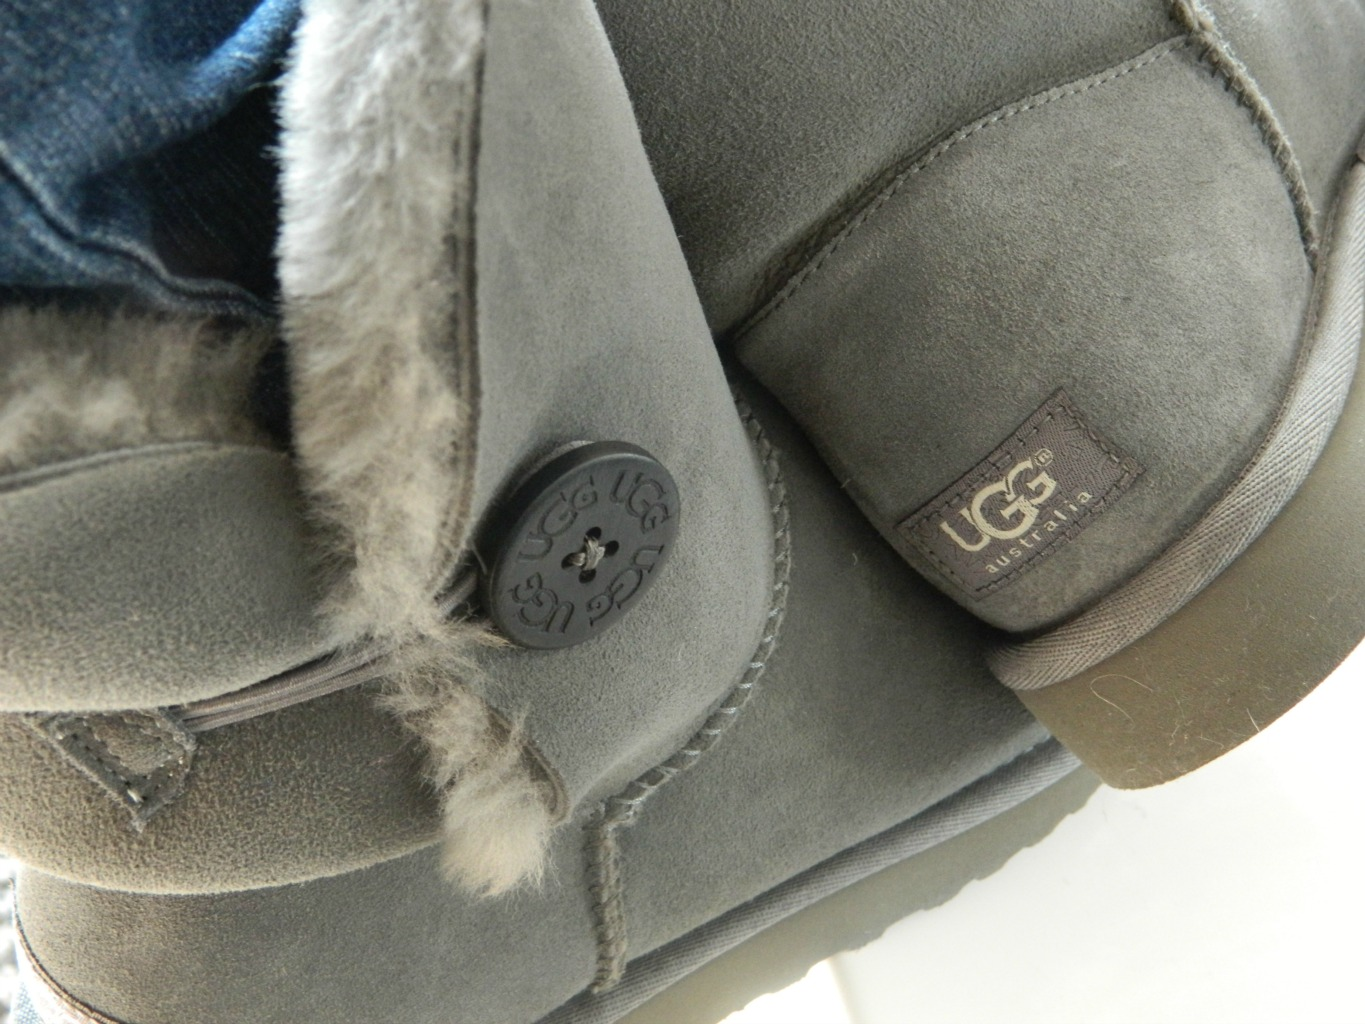 UGG Australia boots review